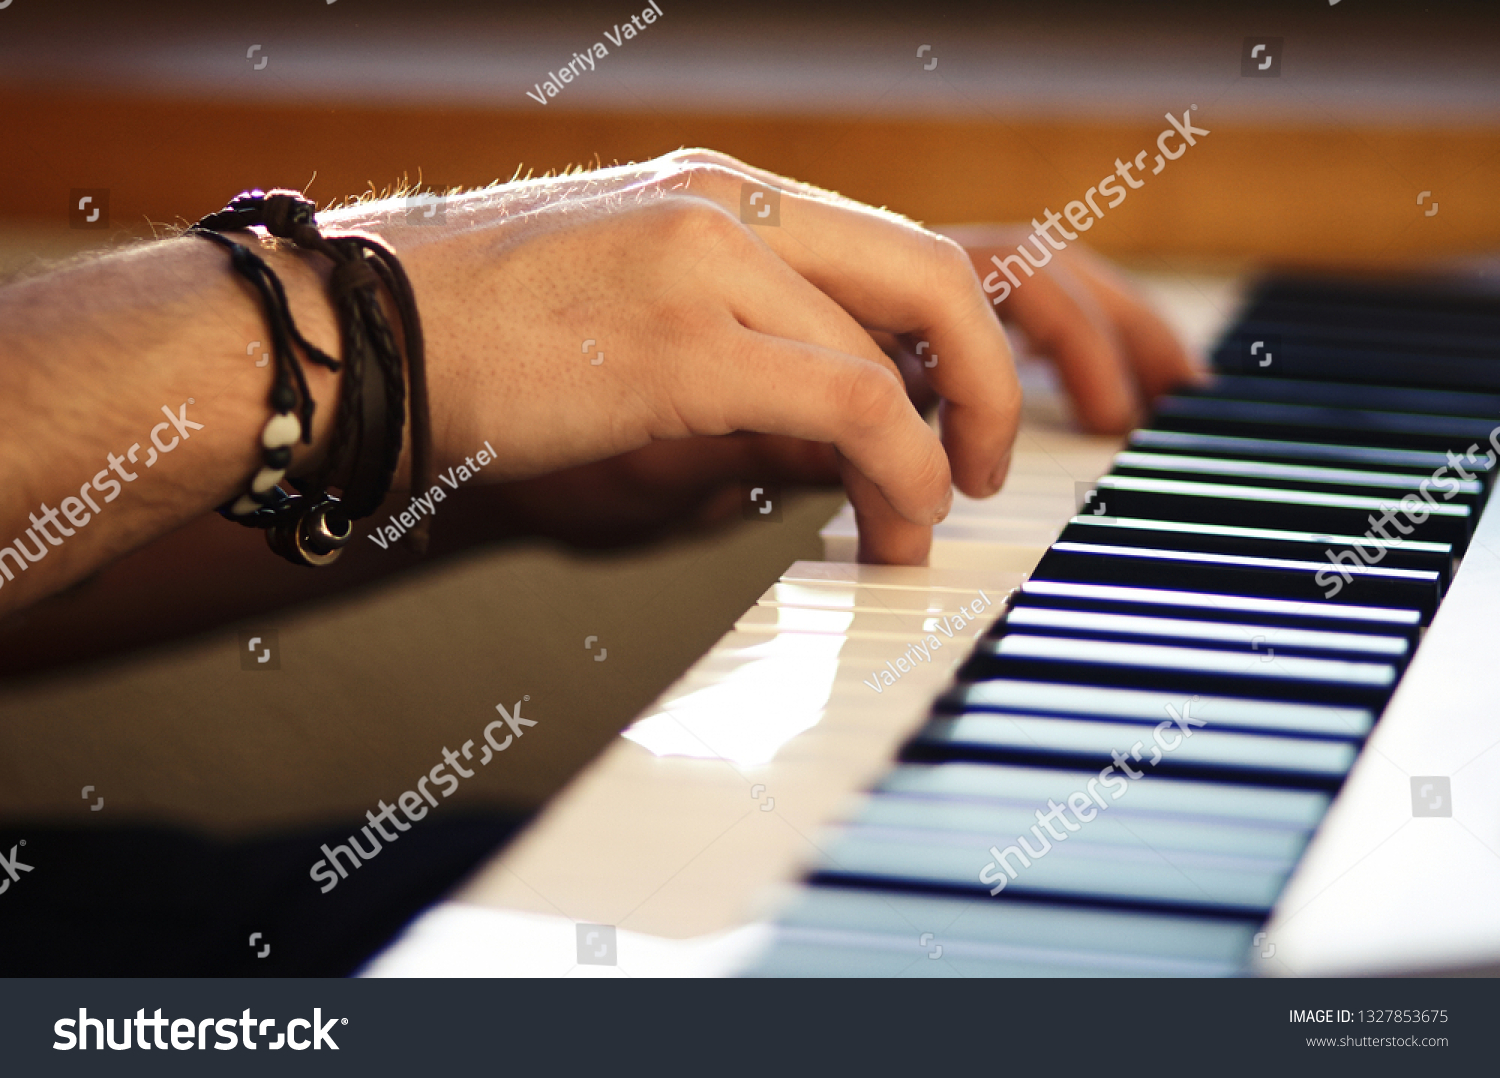 On the keyboard instrument, which is illuminated by weak sunlight, men's hands press the keys, playing a melody #1327853675